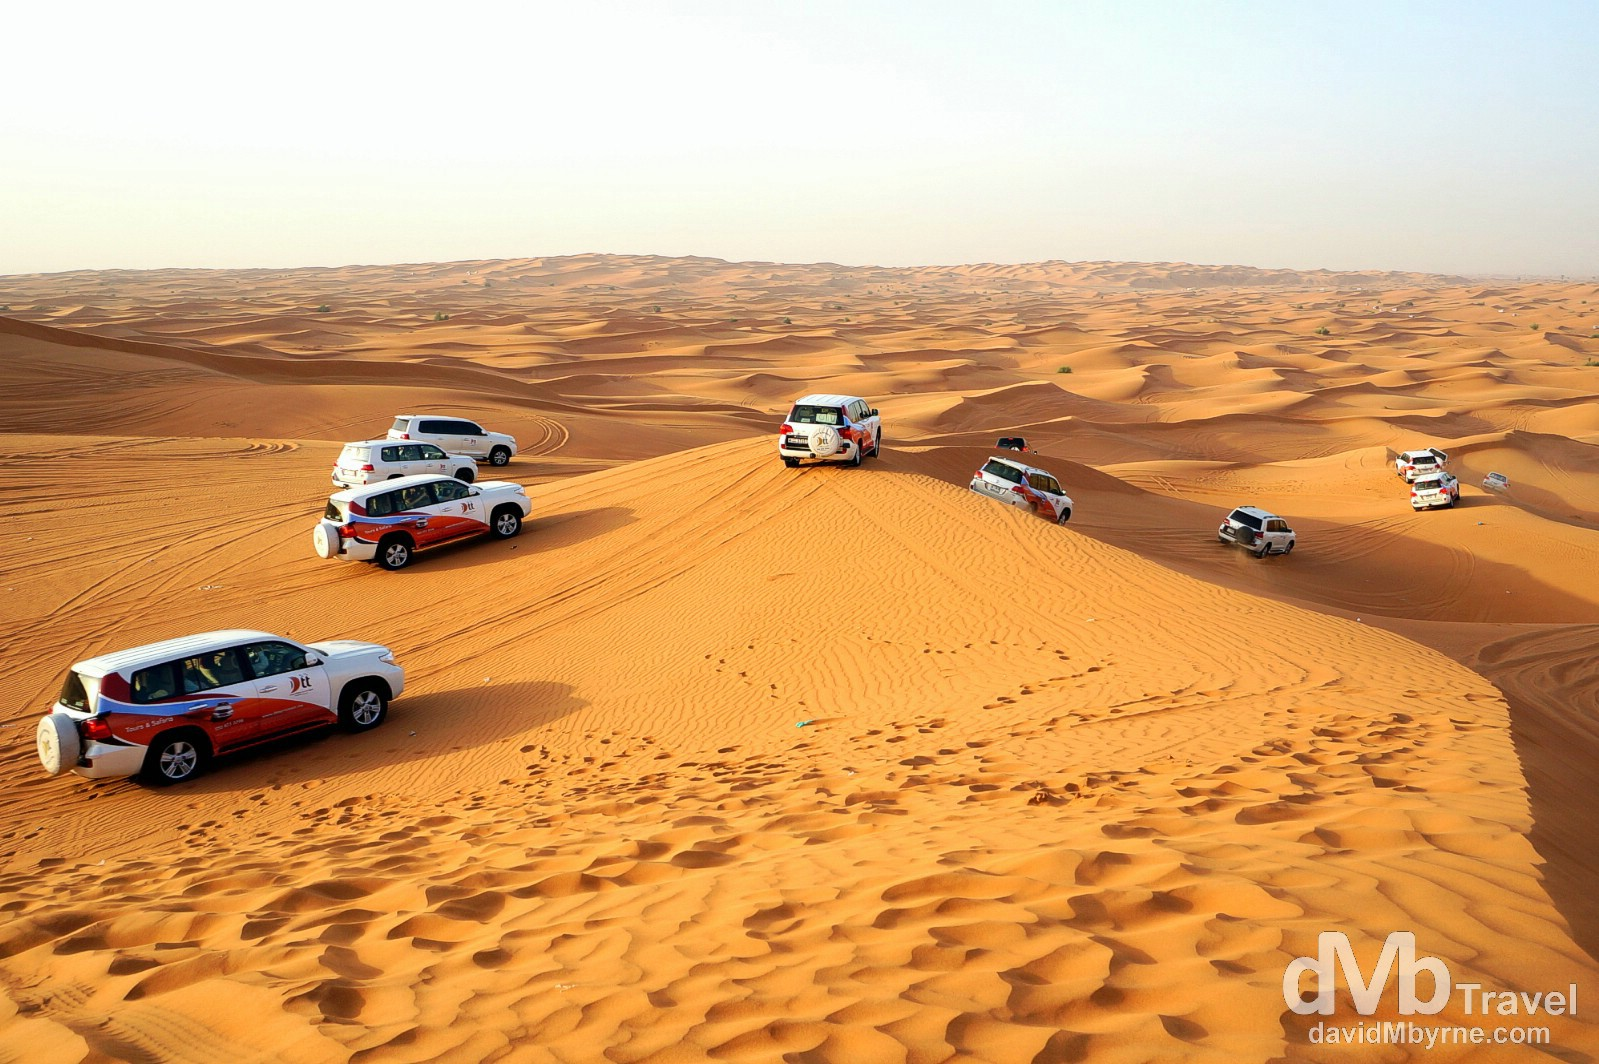 4x4 off-road dune bashing convoy in the expansive desert outside Dubai, UAE. April 17th, 2014.